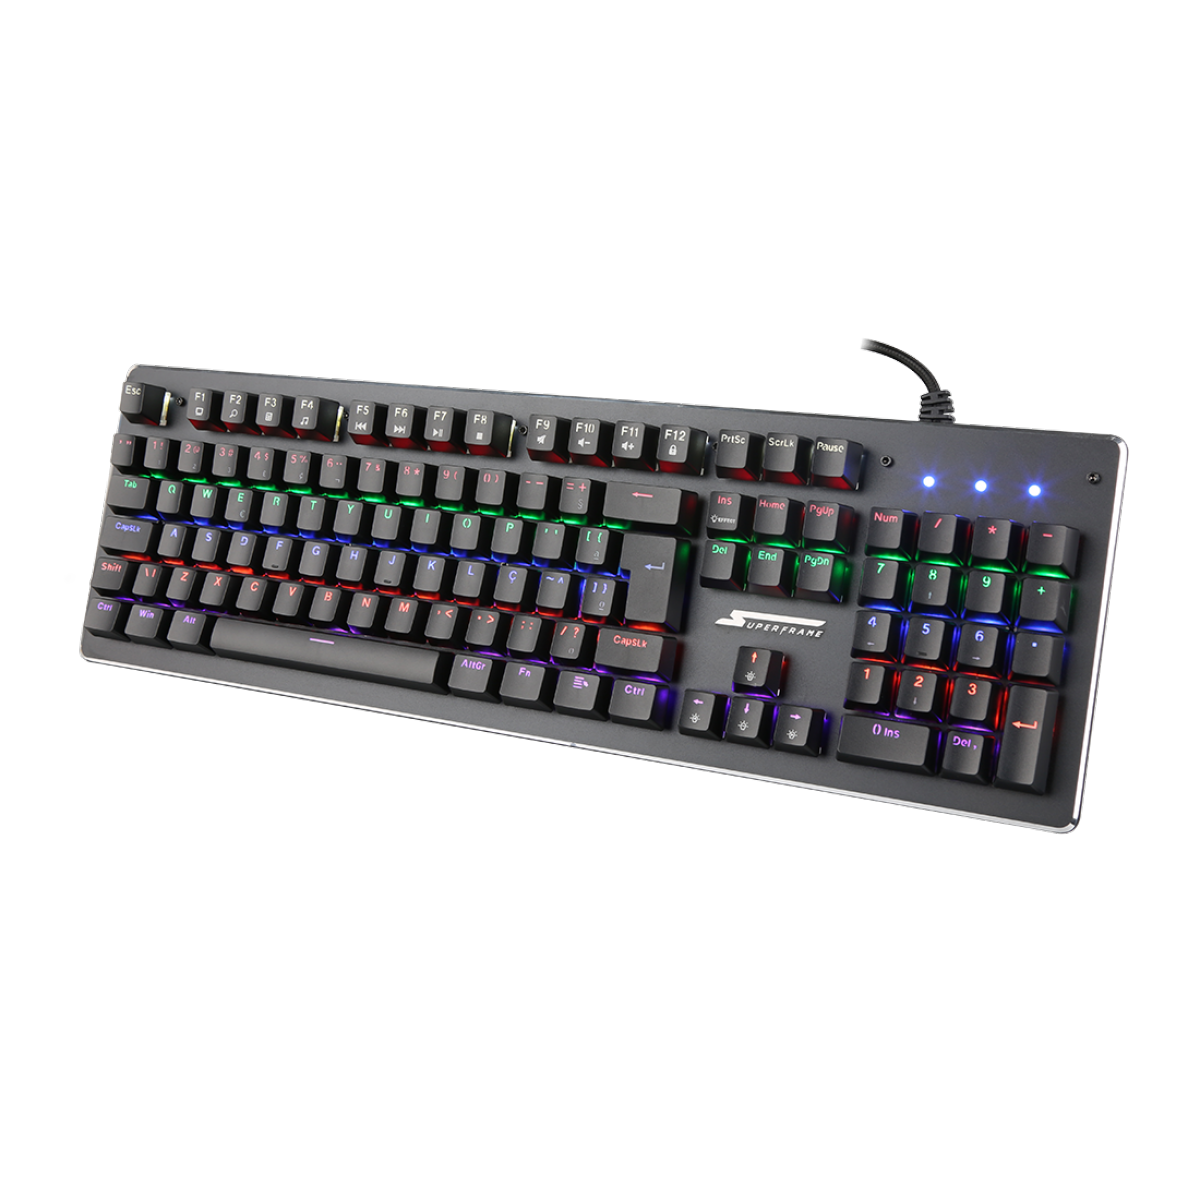 Teclado Mecânico SuperFrame, PLAYER 1, Rainbow, Switch Blue, ABNT2, Black